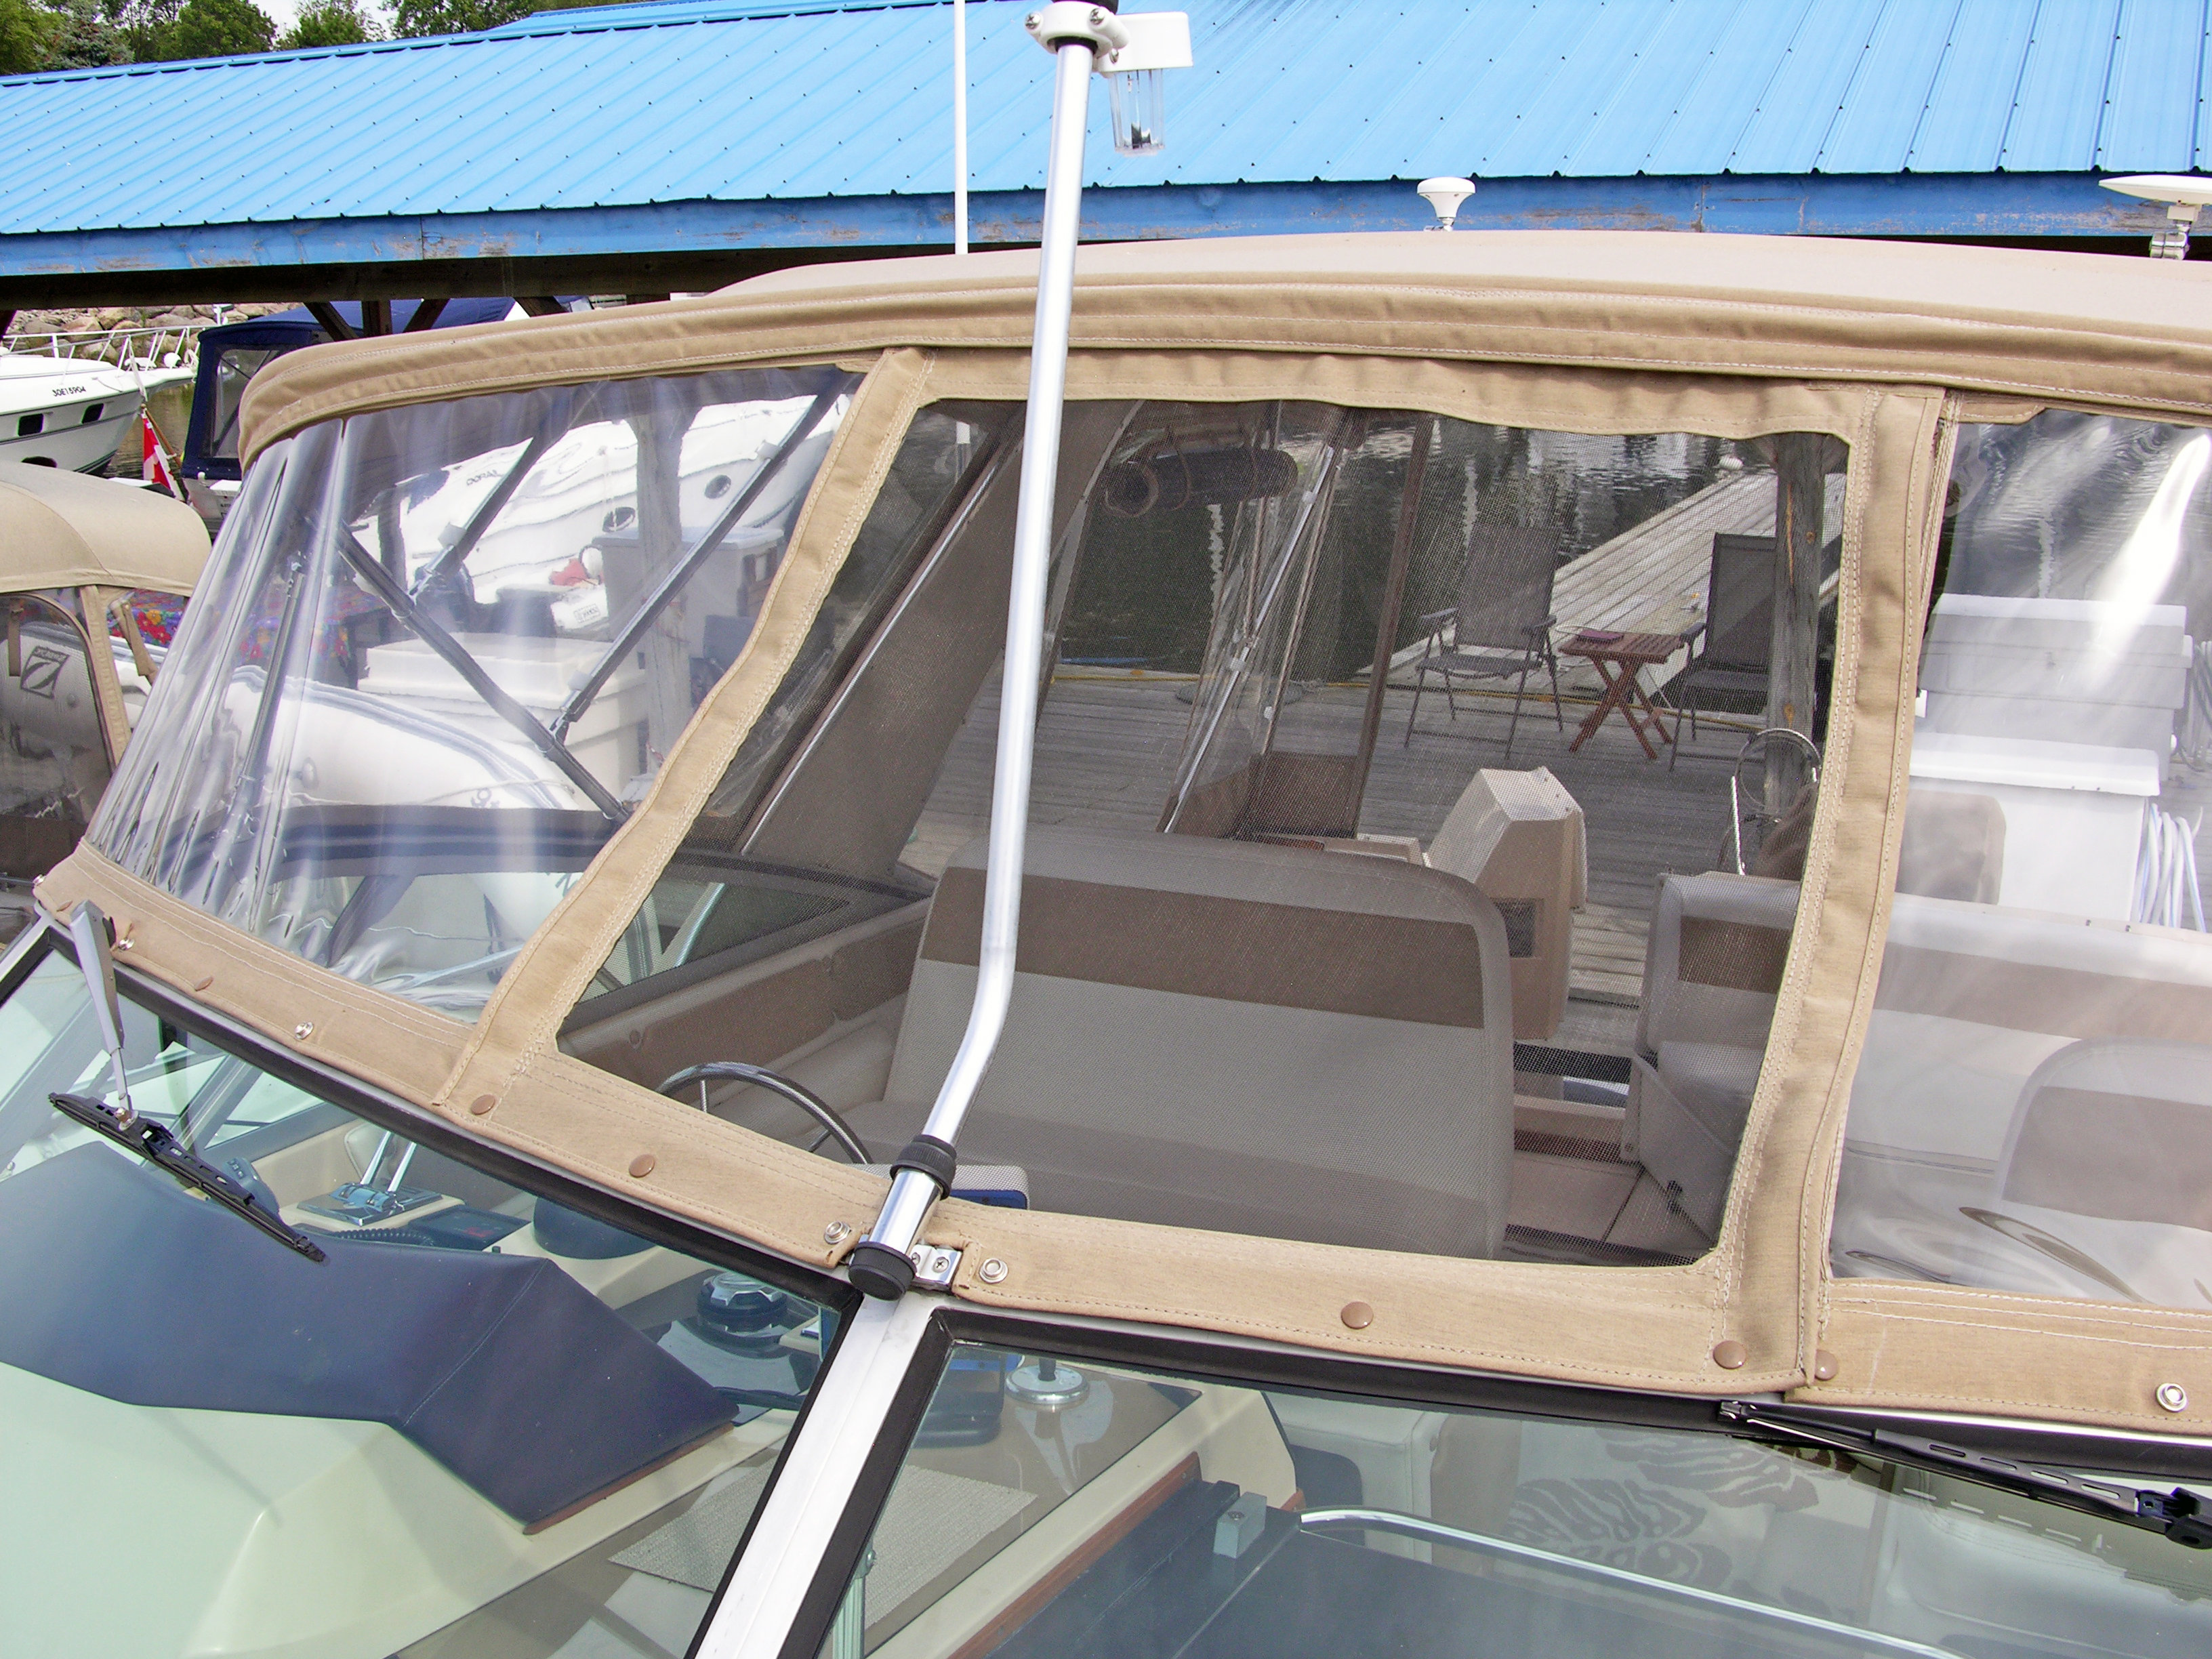 Zip in screen for ventilation at anchor